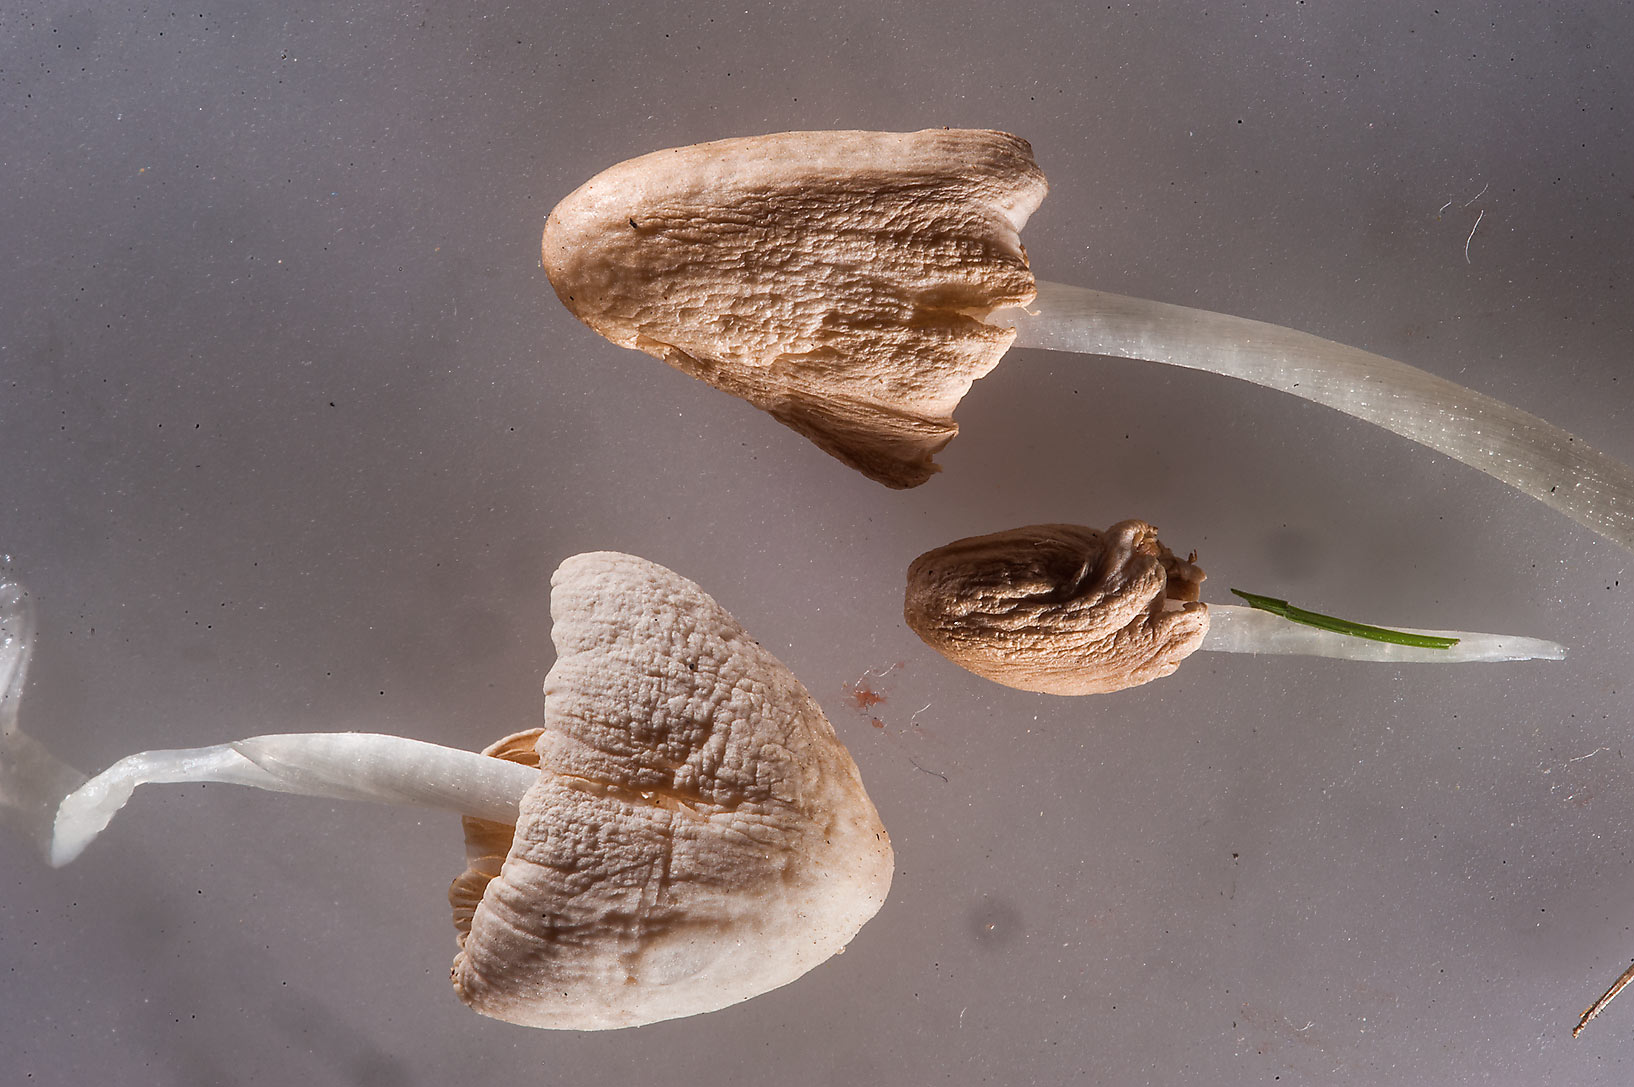 Small fragile toadstools (milky conecap, white...from a lawn on Corniche. Doha, Qatar